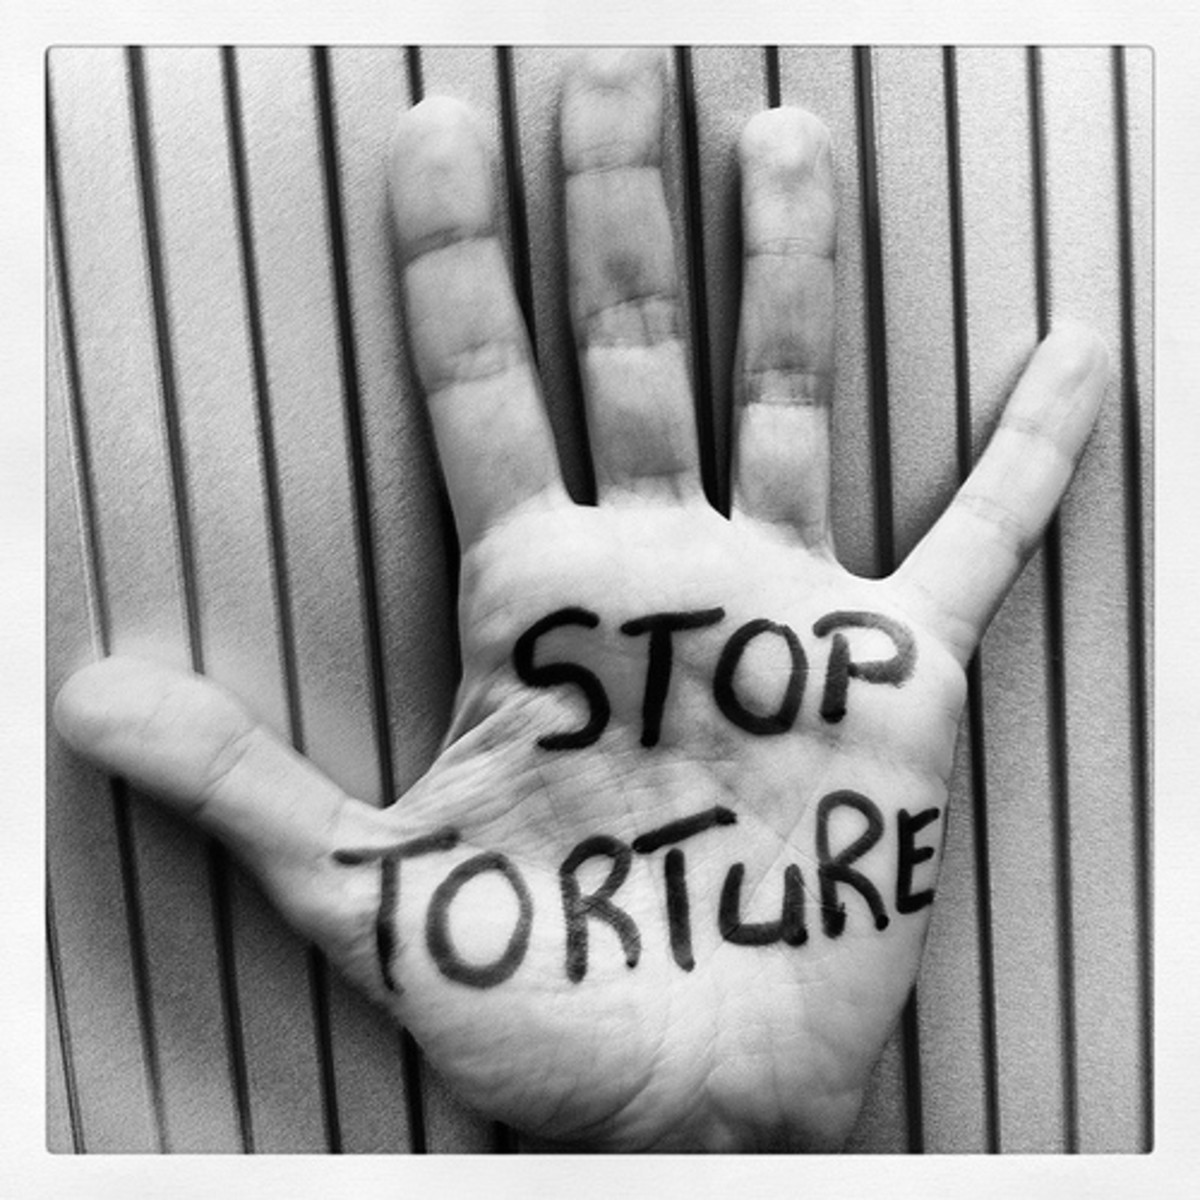 torture-does-not-work